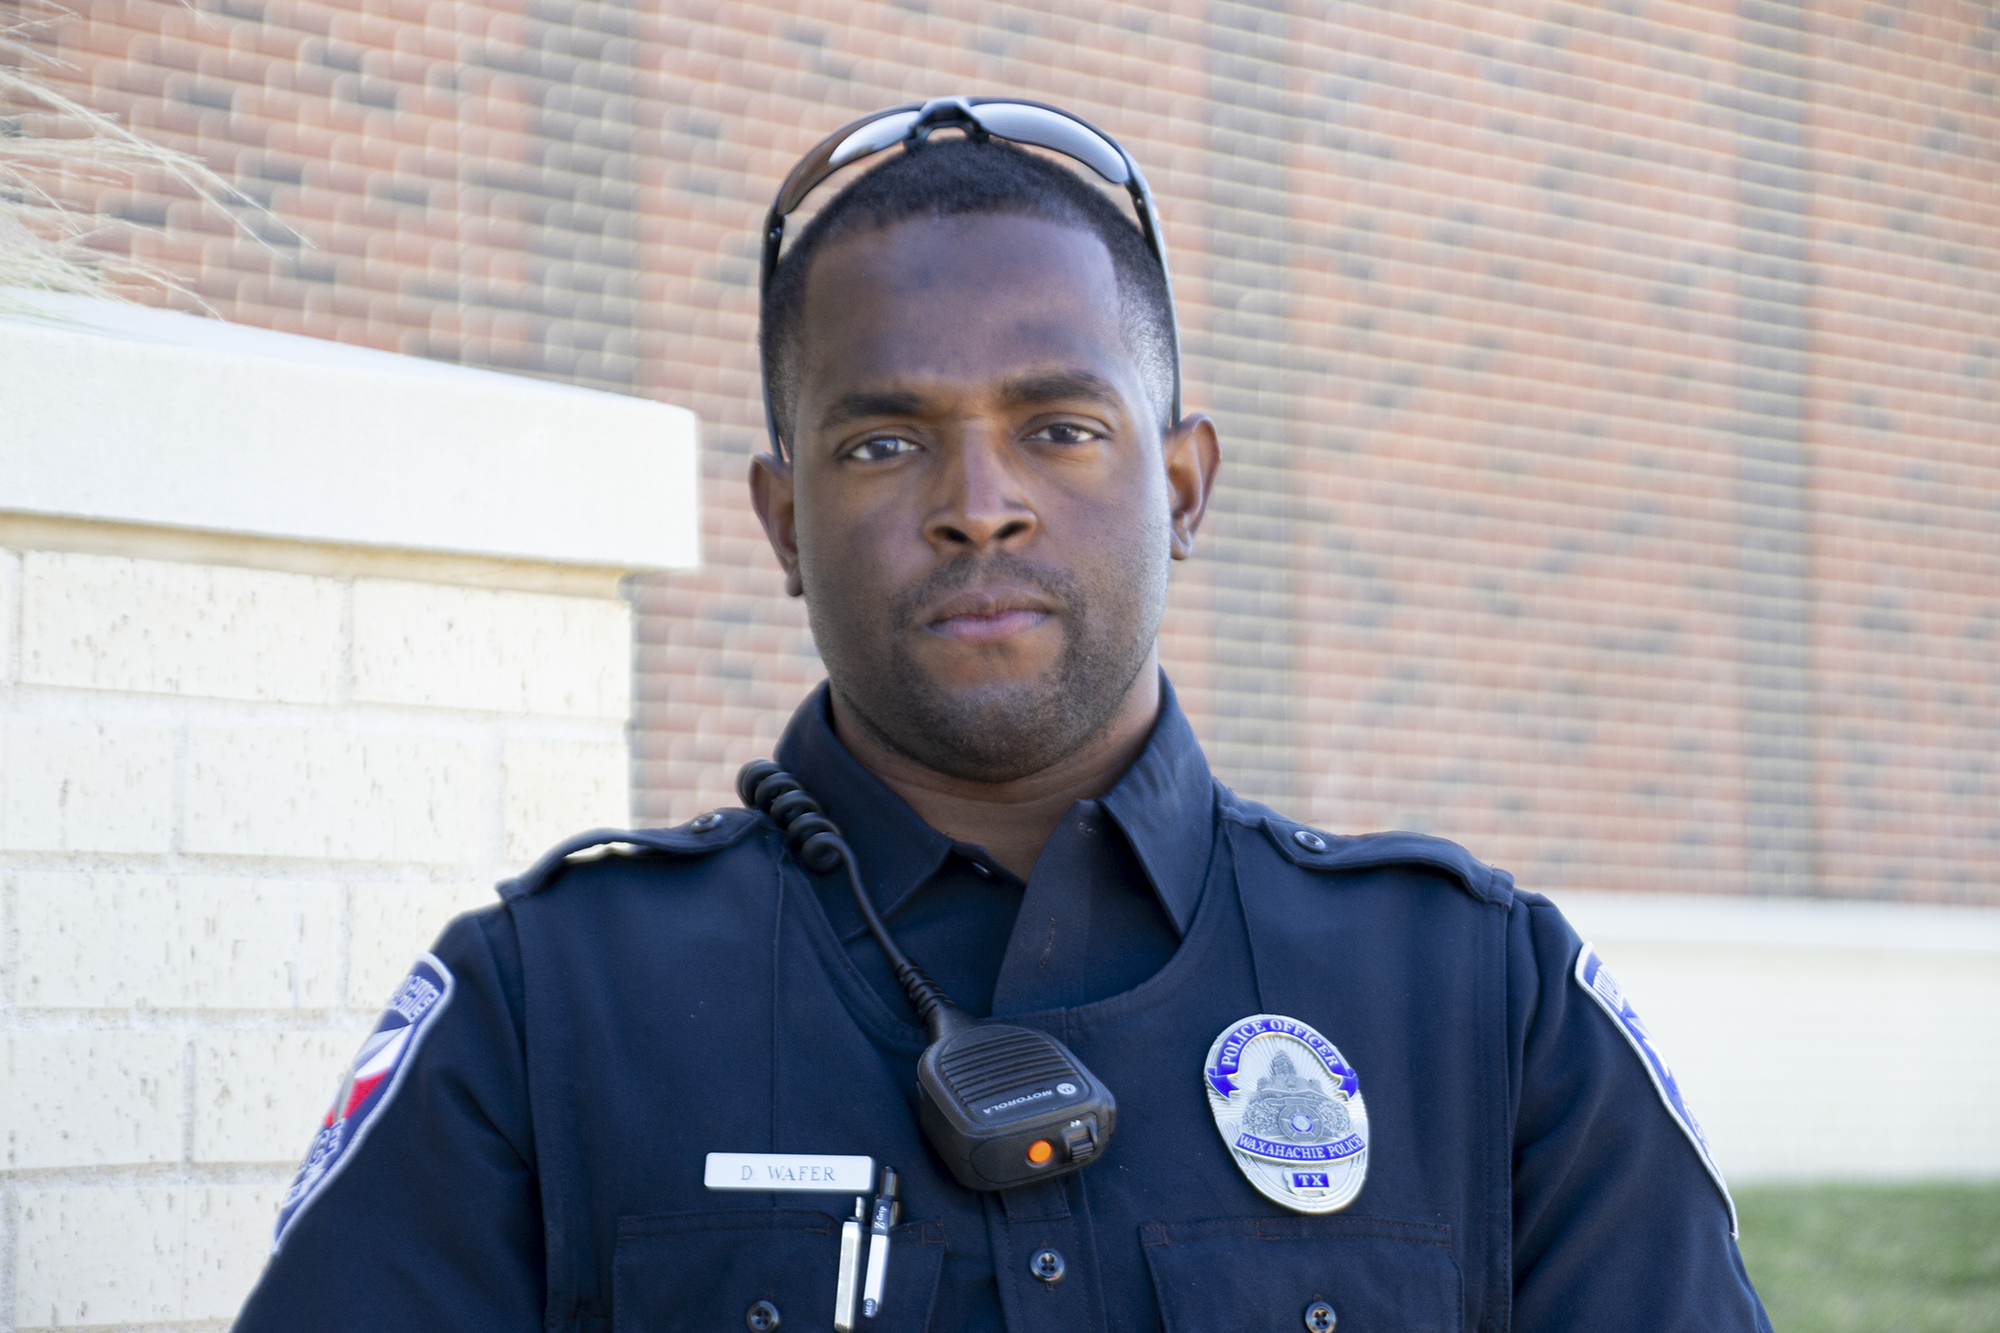 headshot of officer officer wafer